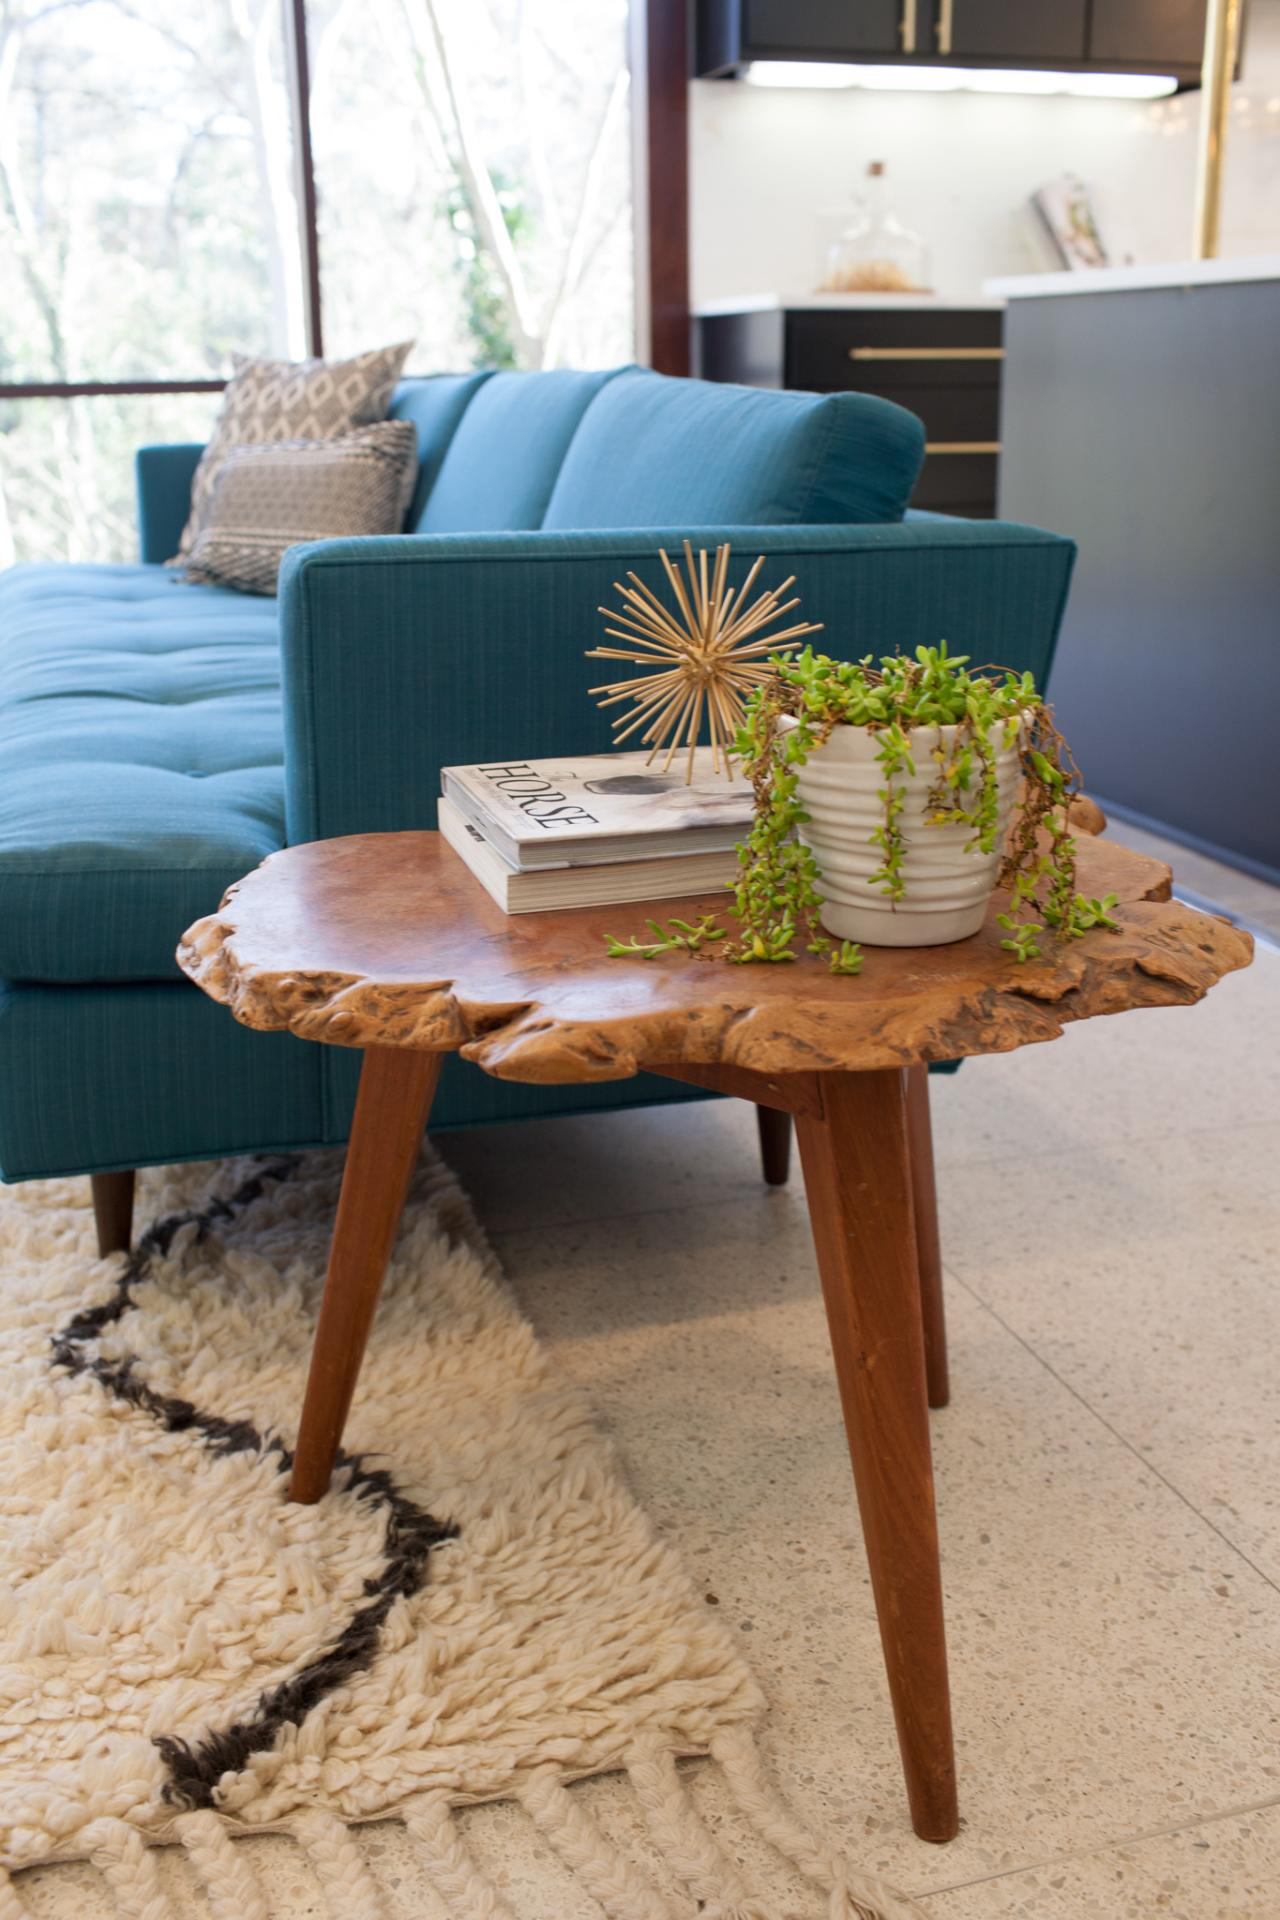 trending now live edge furniture decorating design blog accent table brown living room with blue couch and side black white marble media console drop leaf folding chairs outdoor